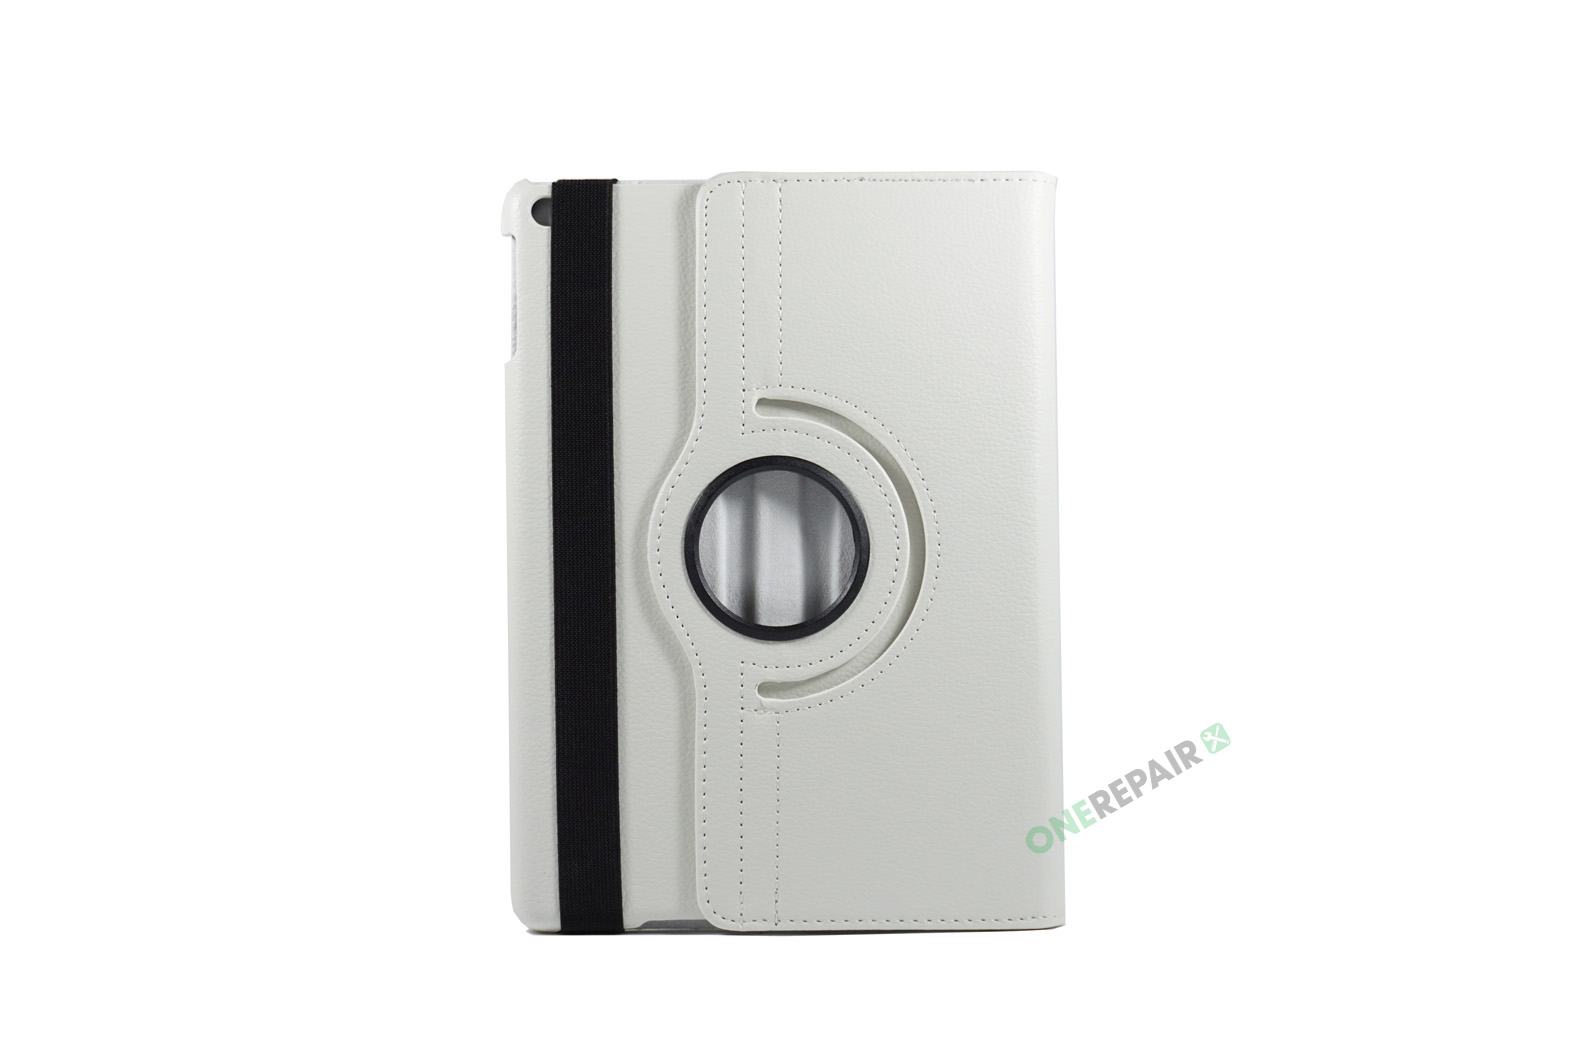 351013_iPad_Air_A1474_A1475_A1476_Flipcover_Cover_Hvid_OneRepair_00001